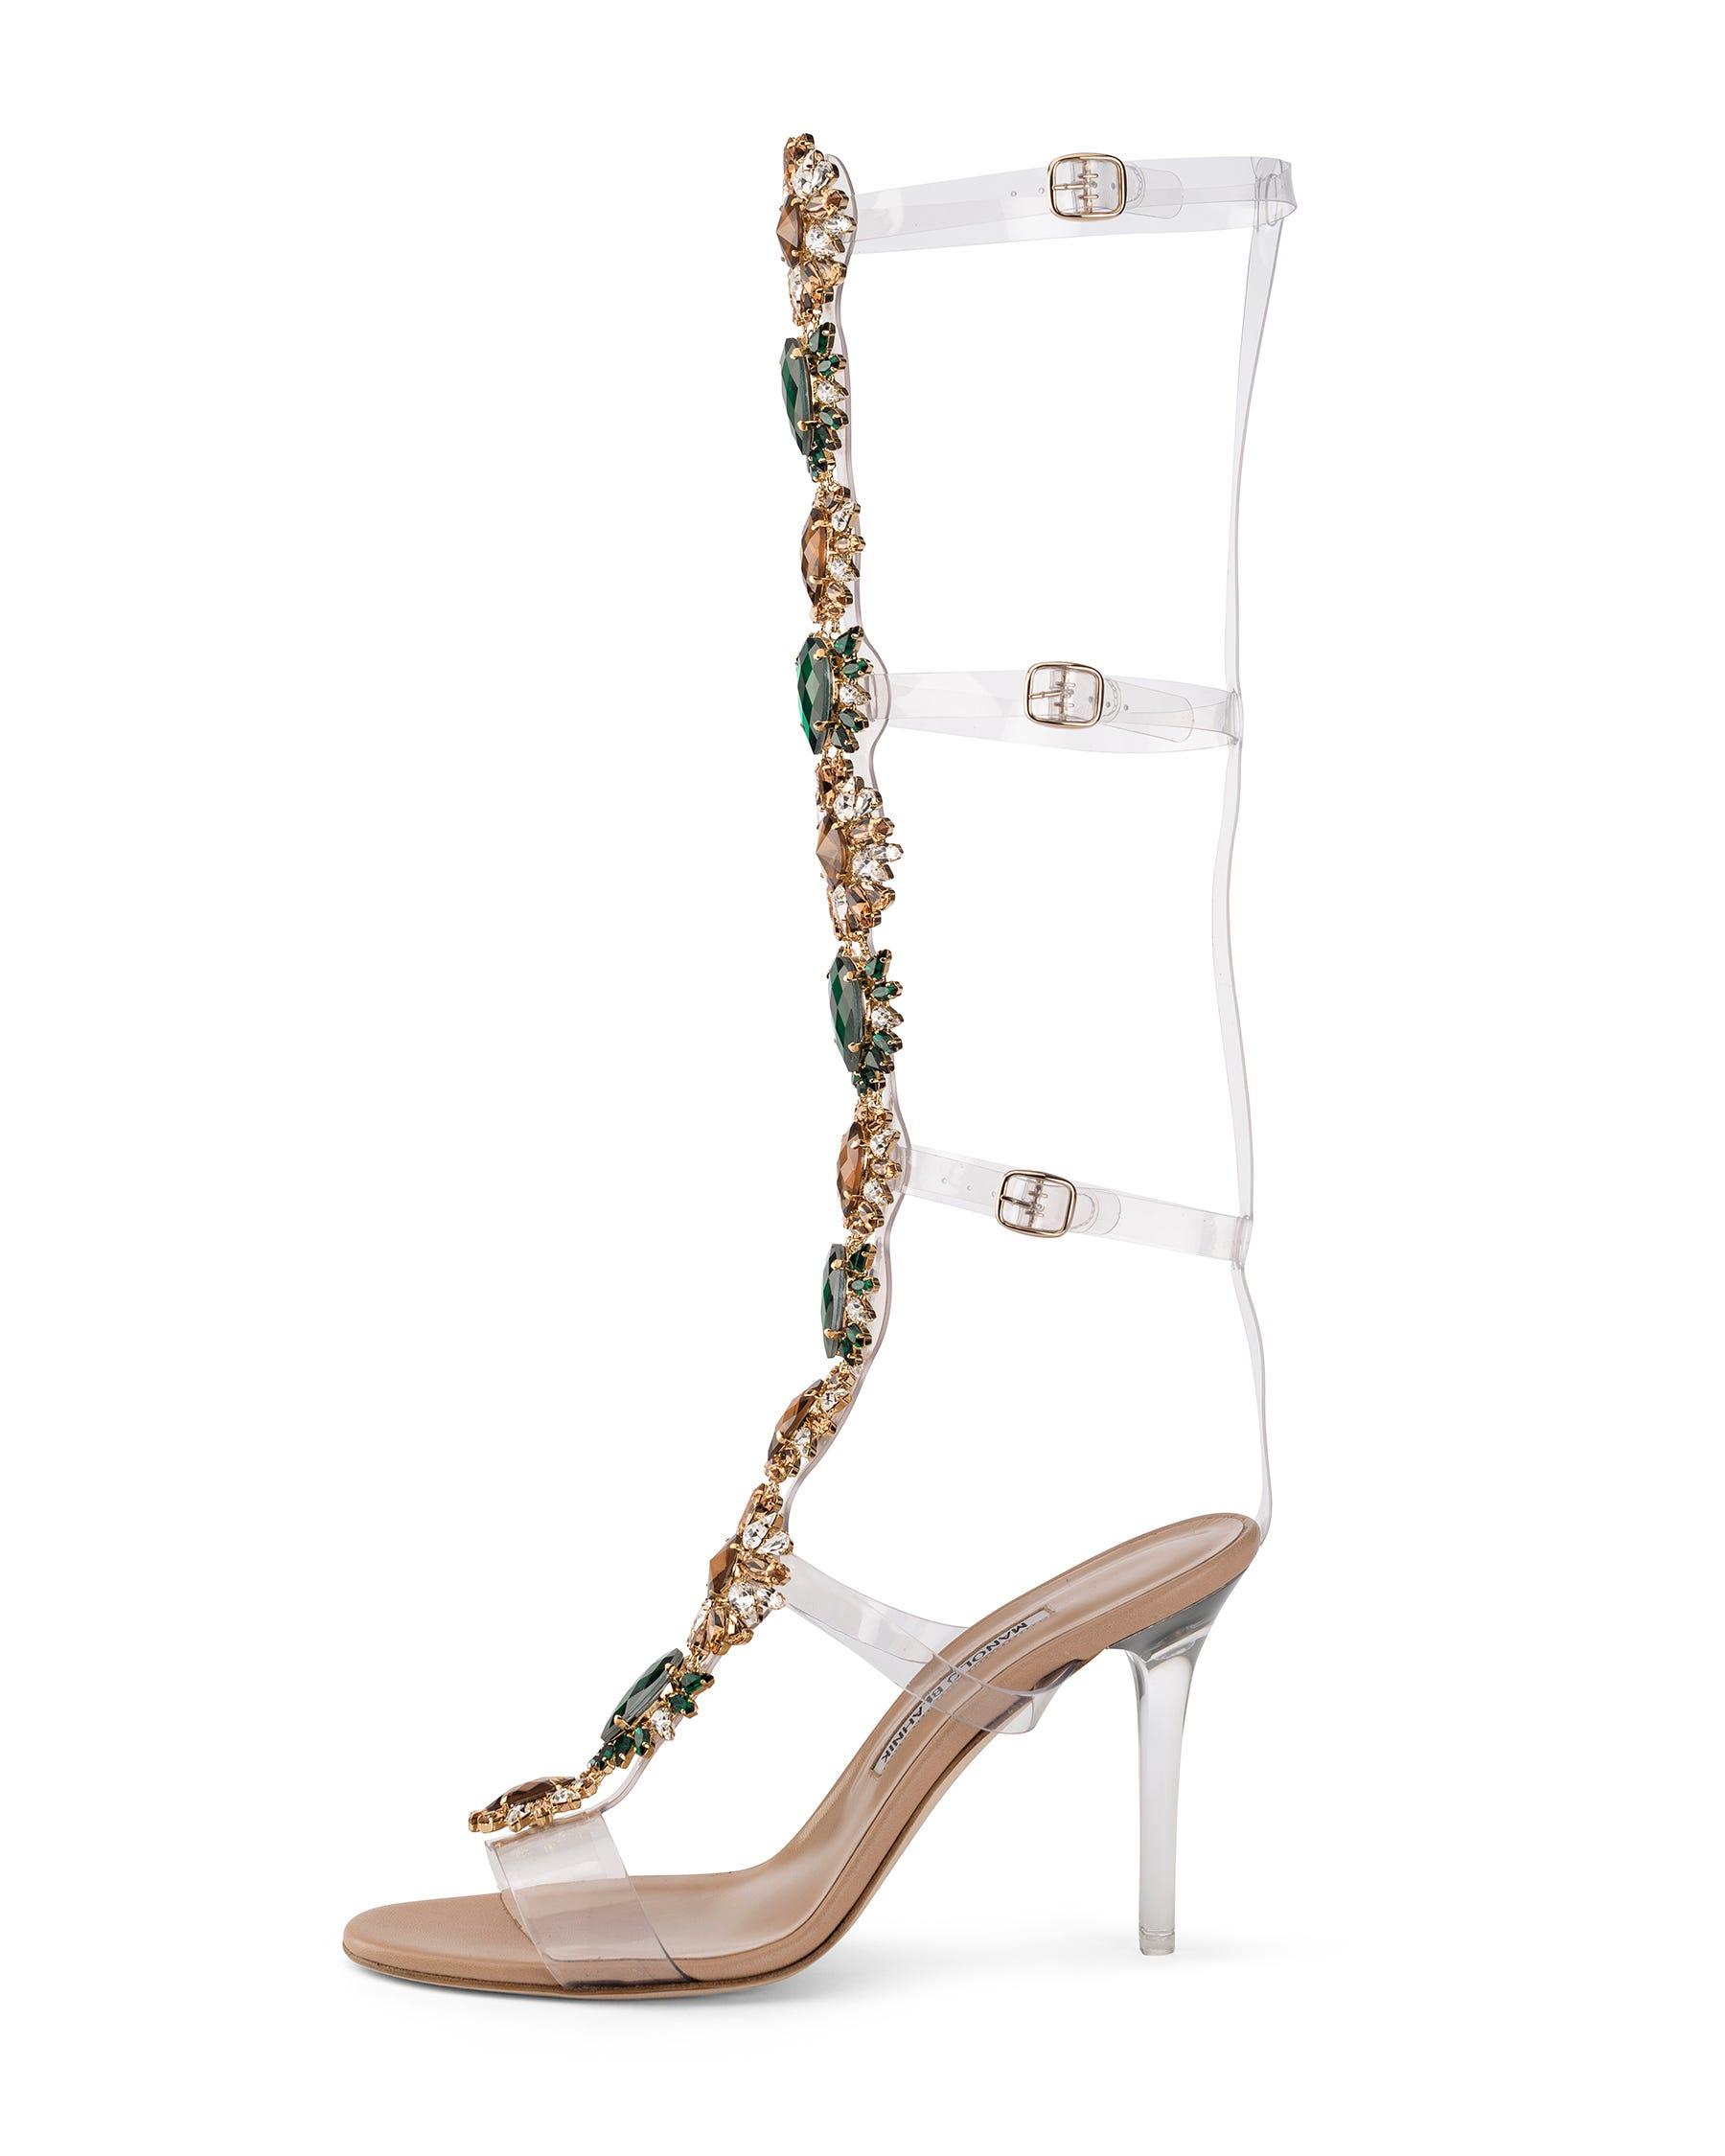 dsk srcbg heels gold heel hero tom gol rgb tie metallic product pdp a sole in height sandal os ela ford ankle modesens